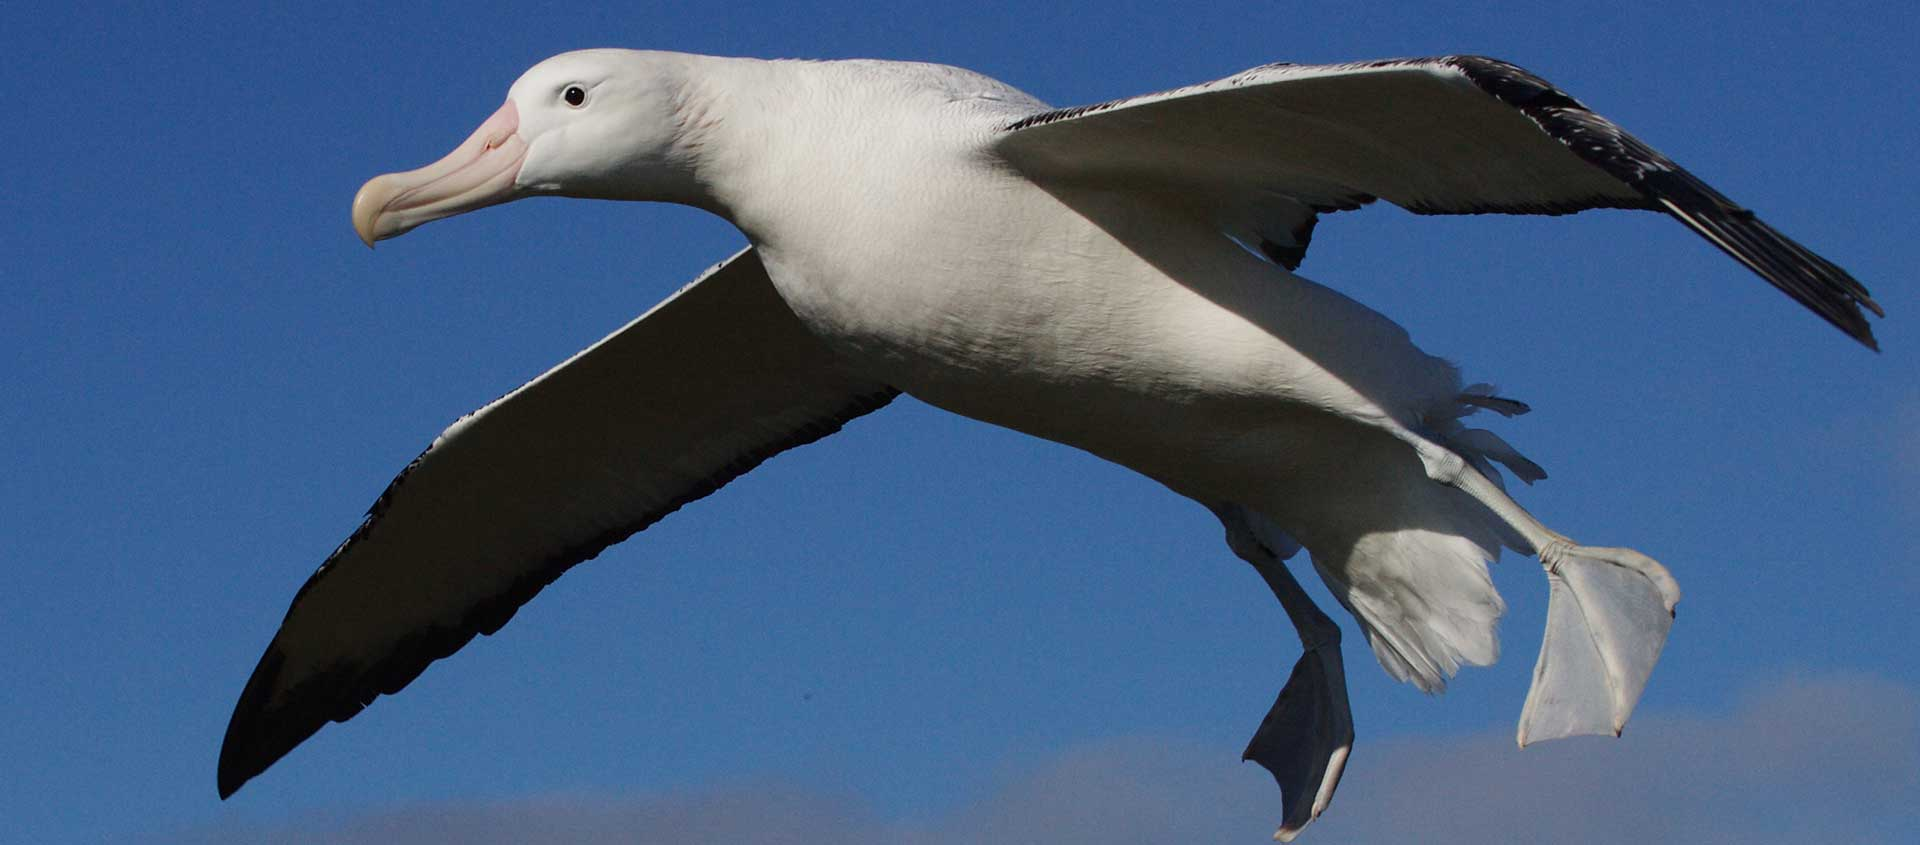 Emperor Penguin Cruise south of the Arctic Circle photo showing a Wandering Albatross